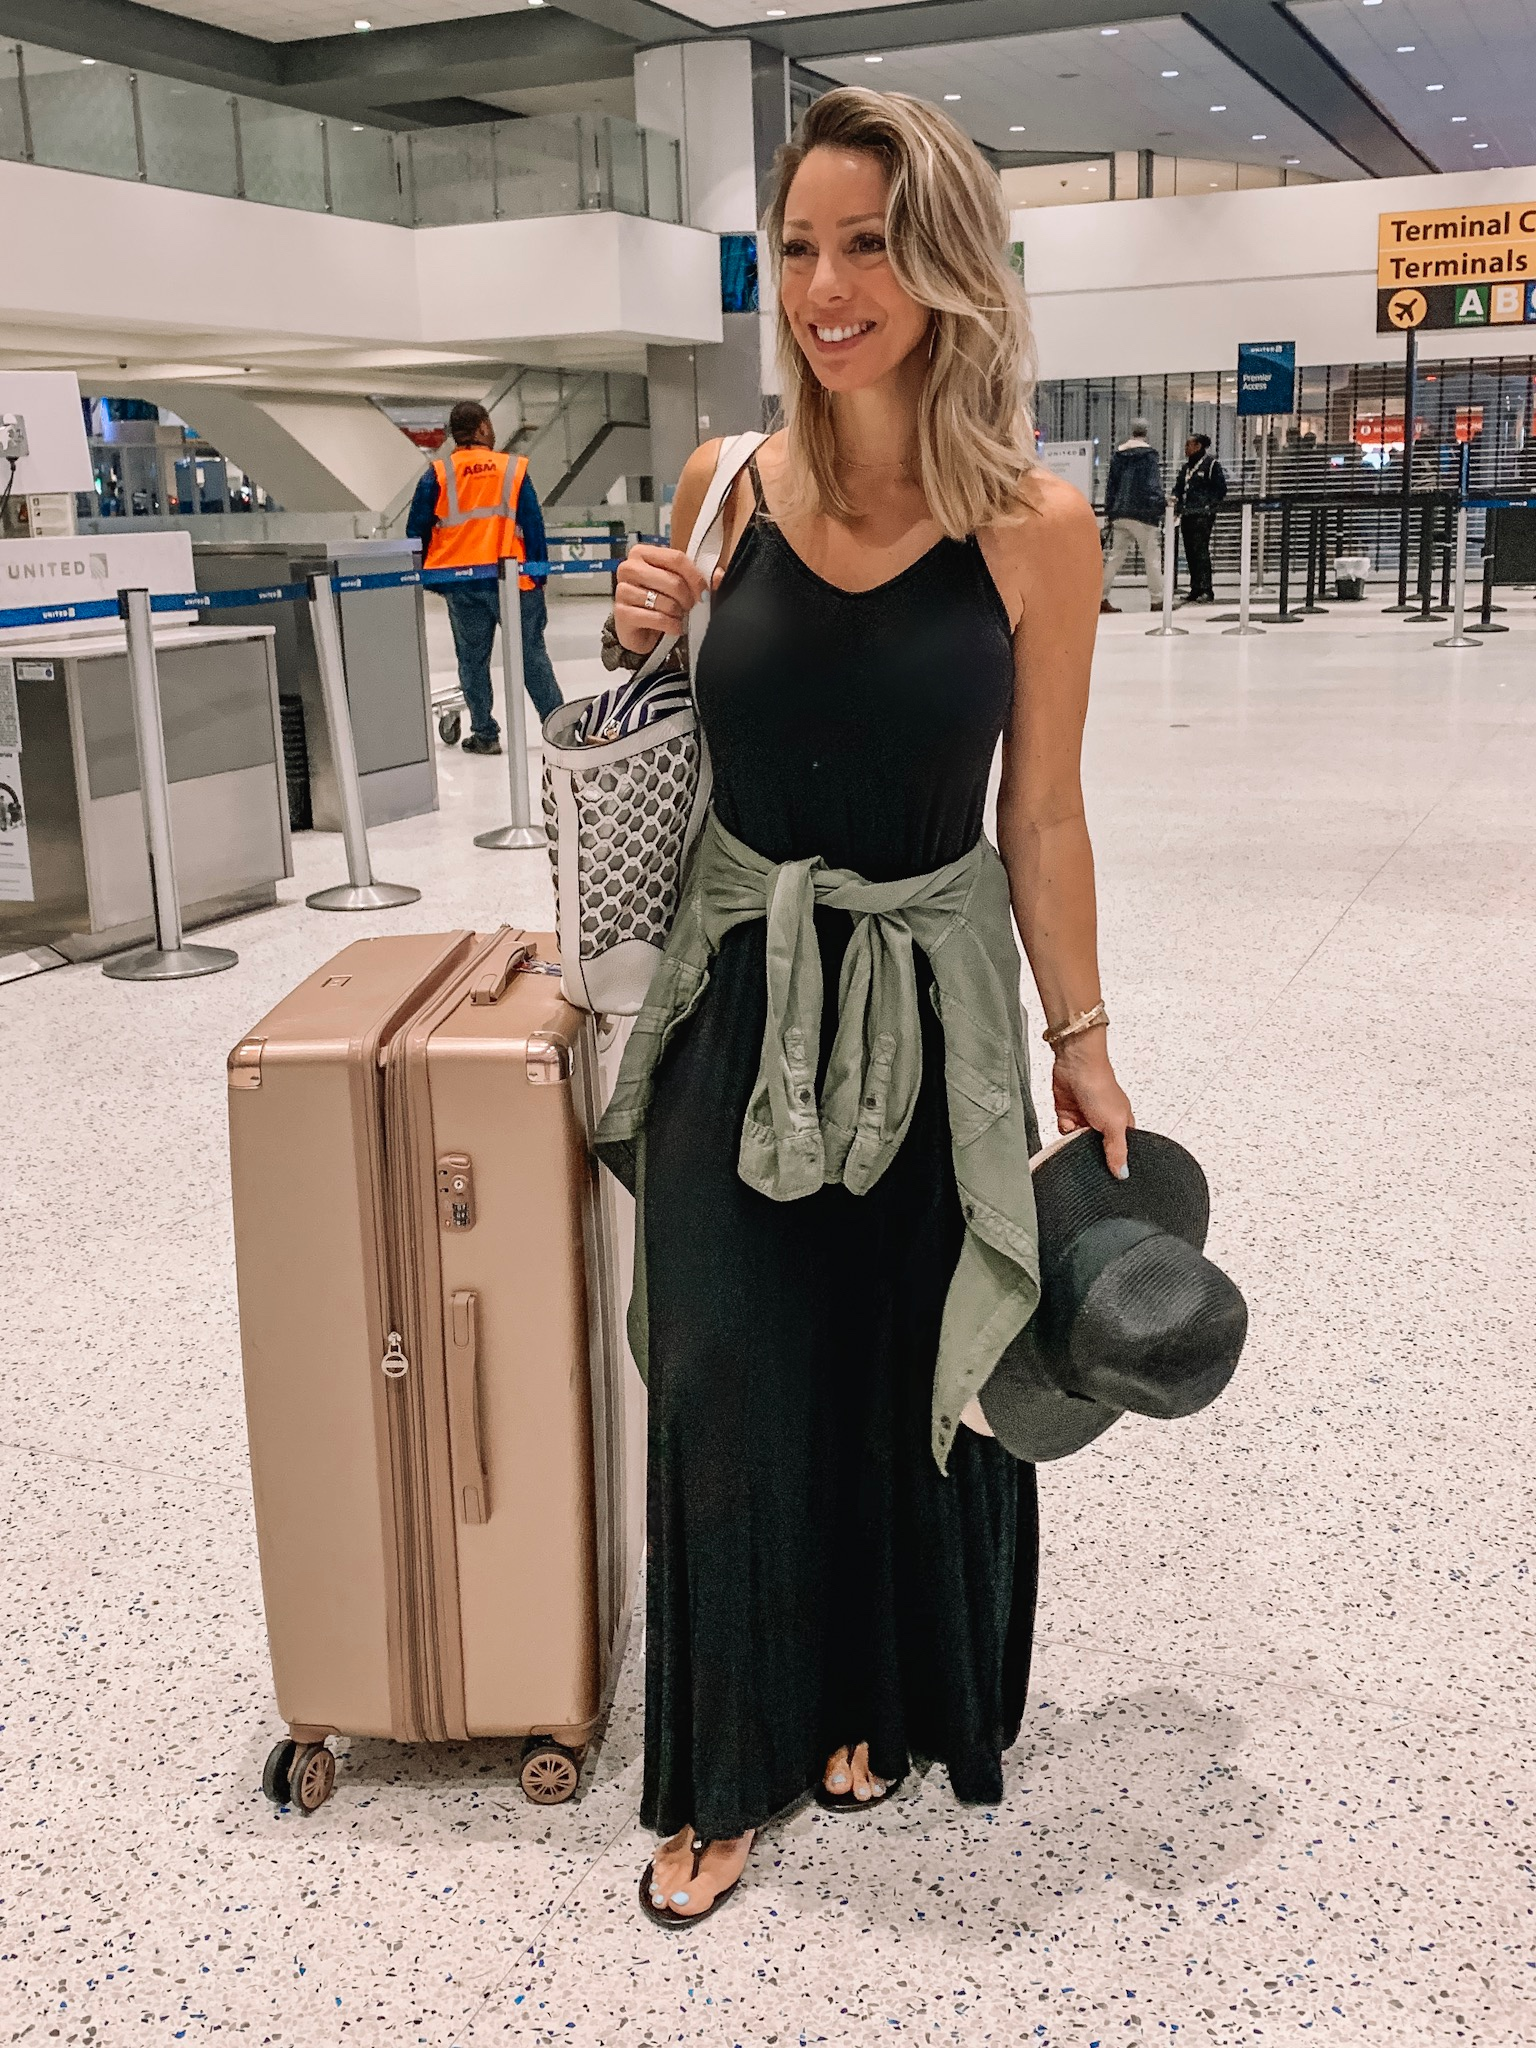 Maxi dress - comfy travel outfit